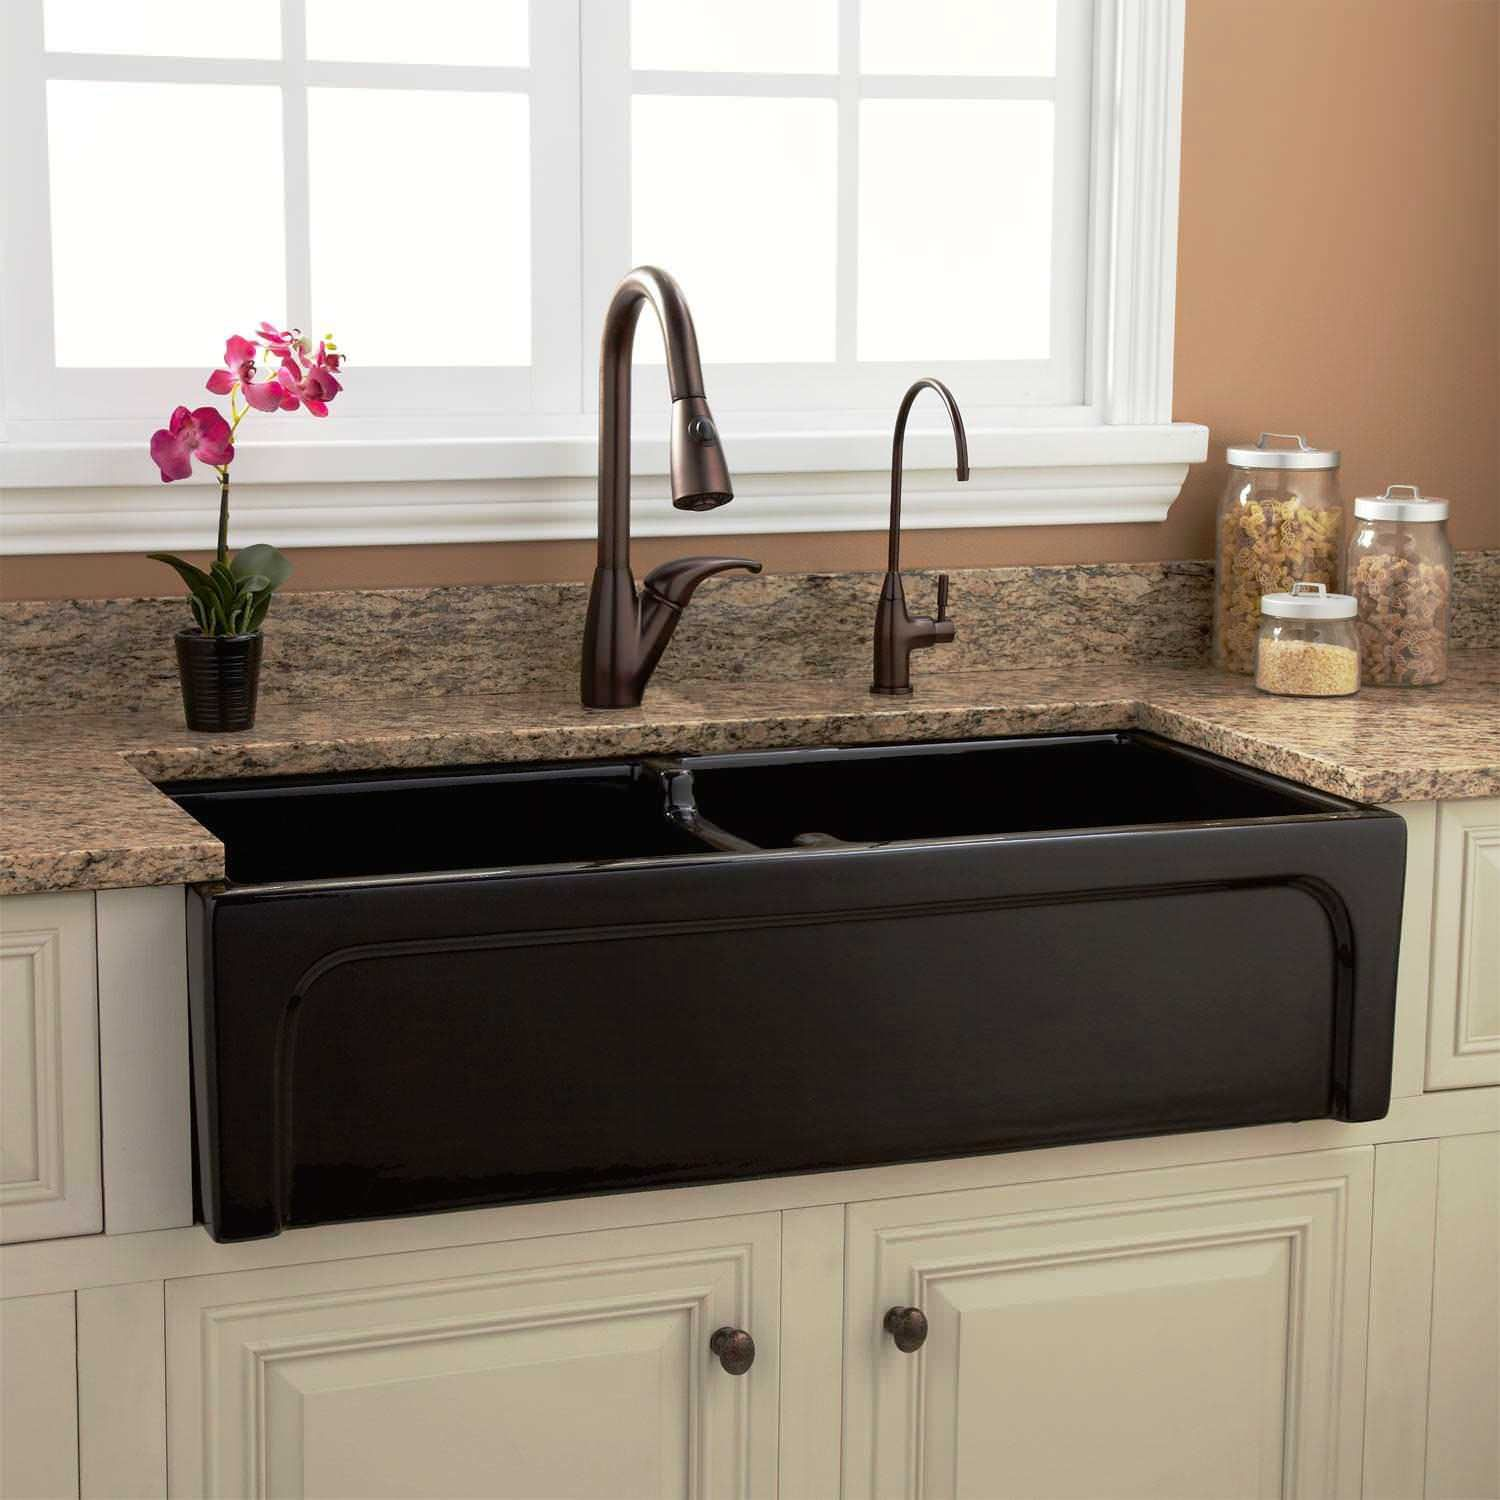 Fantastic Farmhouse Sinks For Sale: Rectangle Dark Double Bowl ...